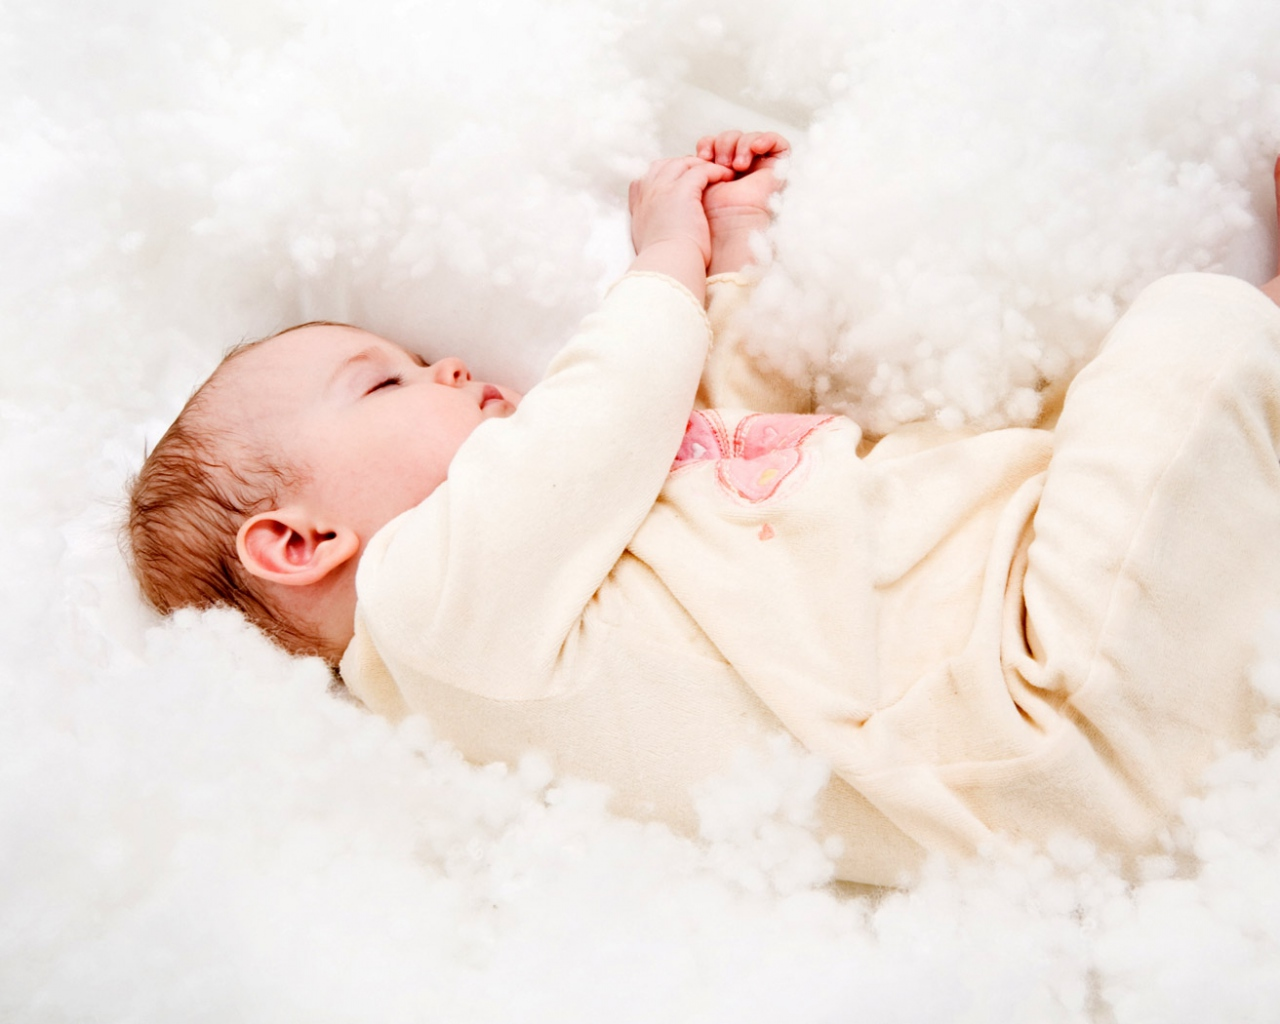 baby_sleep_cute_82927_1280x1024